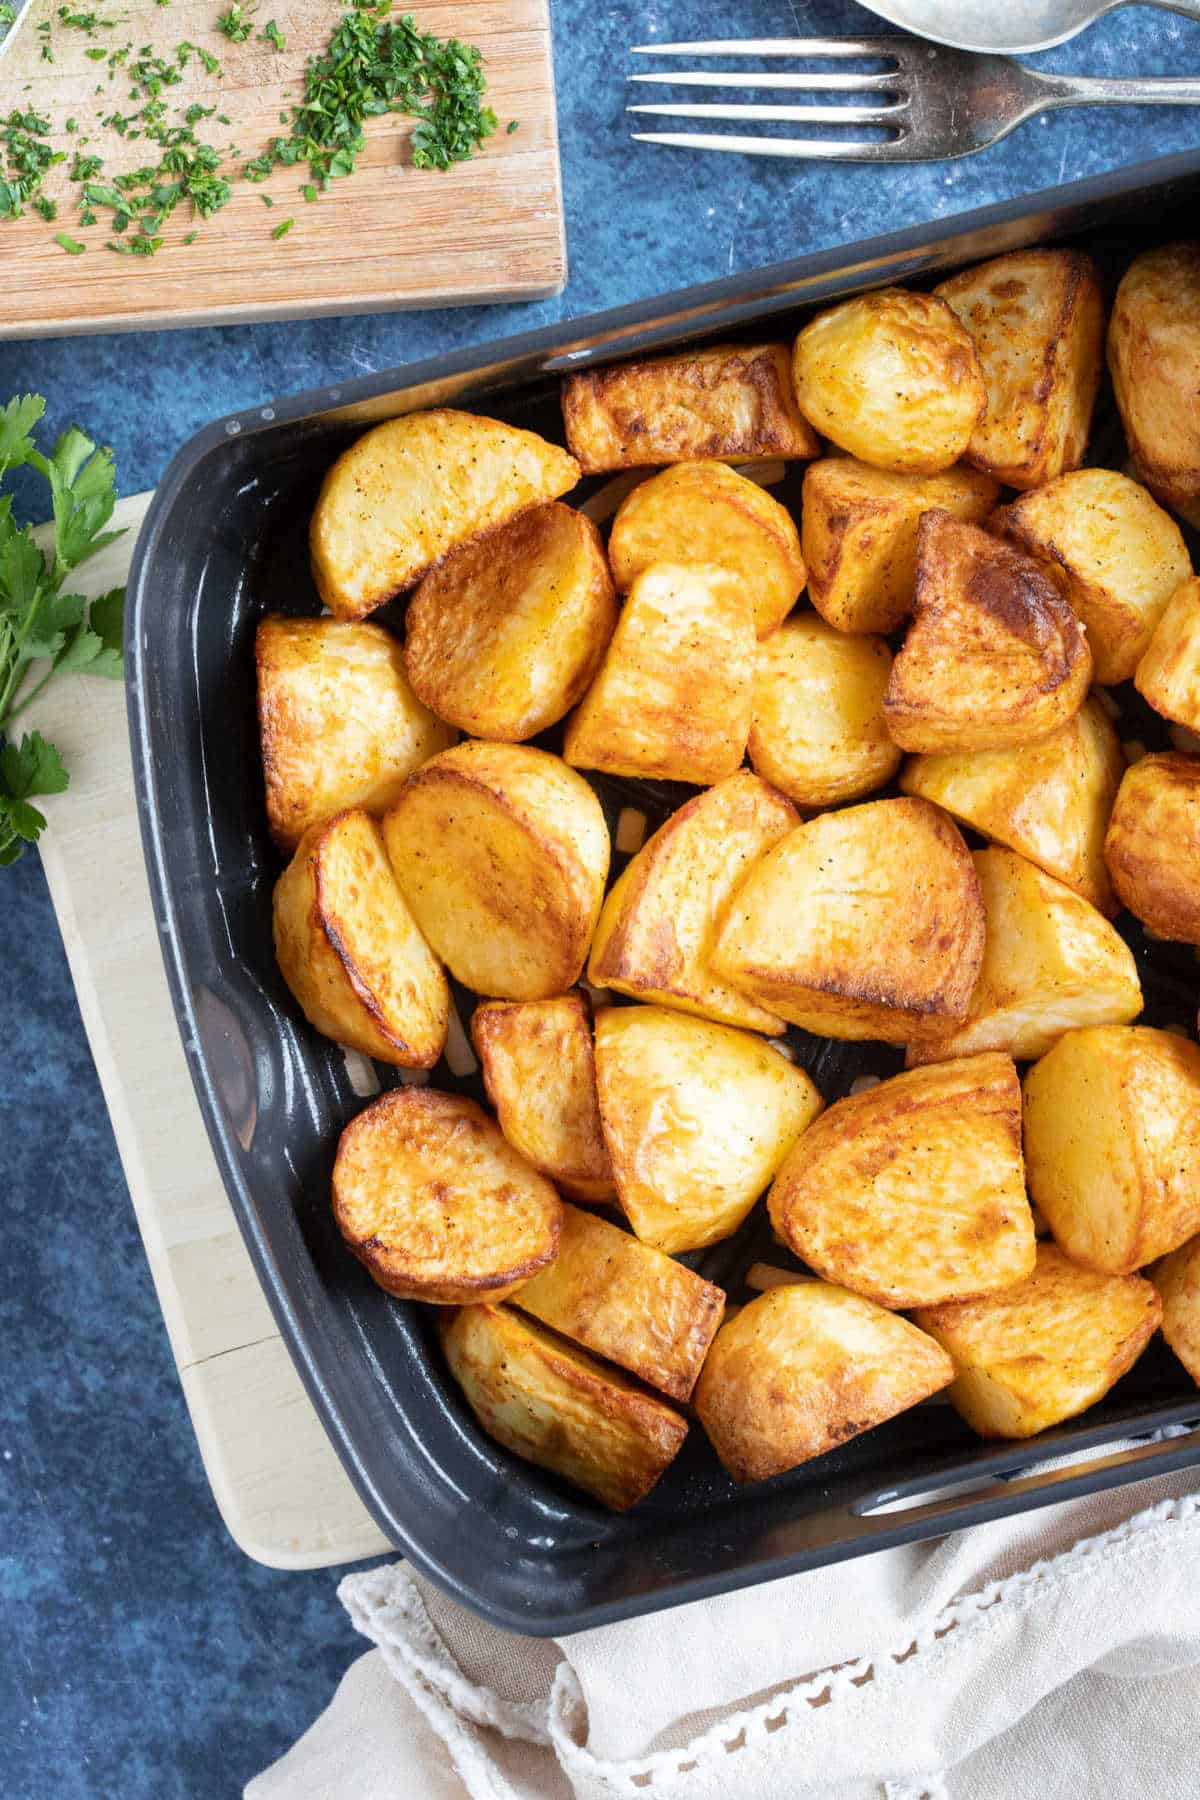 Roast potatoes in an air fryer basket.